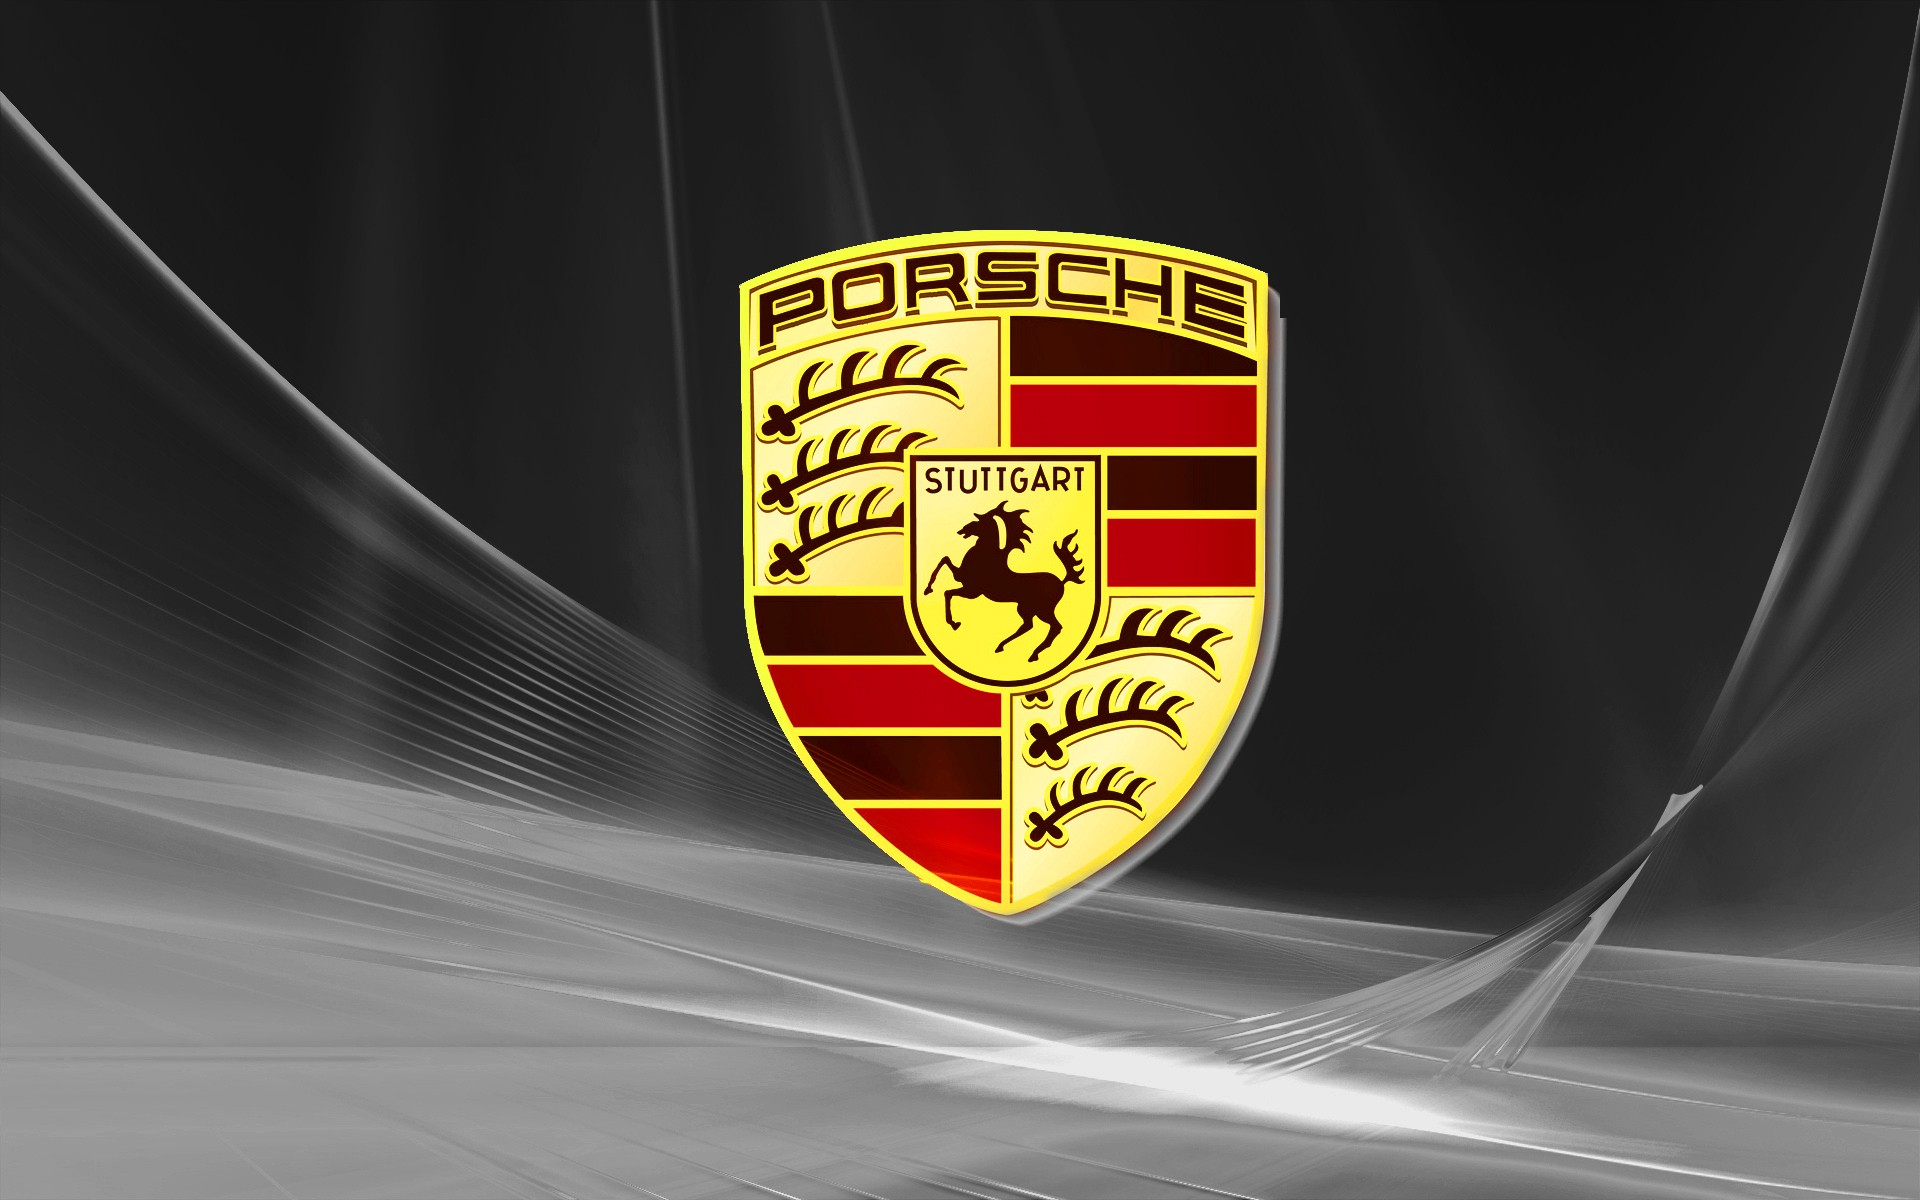 porsche logo wallpapers  pictures  images stereologic ltd stereological